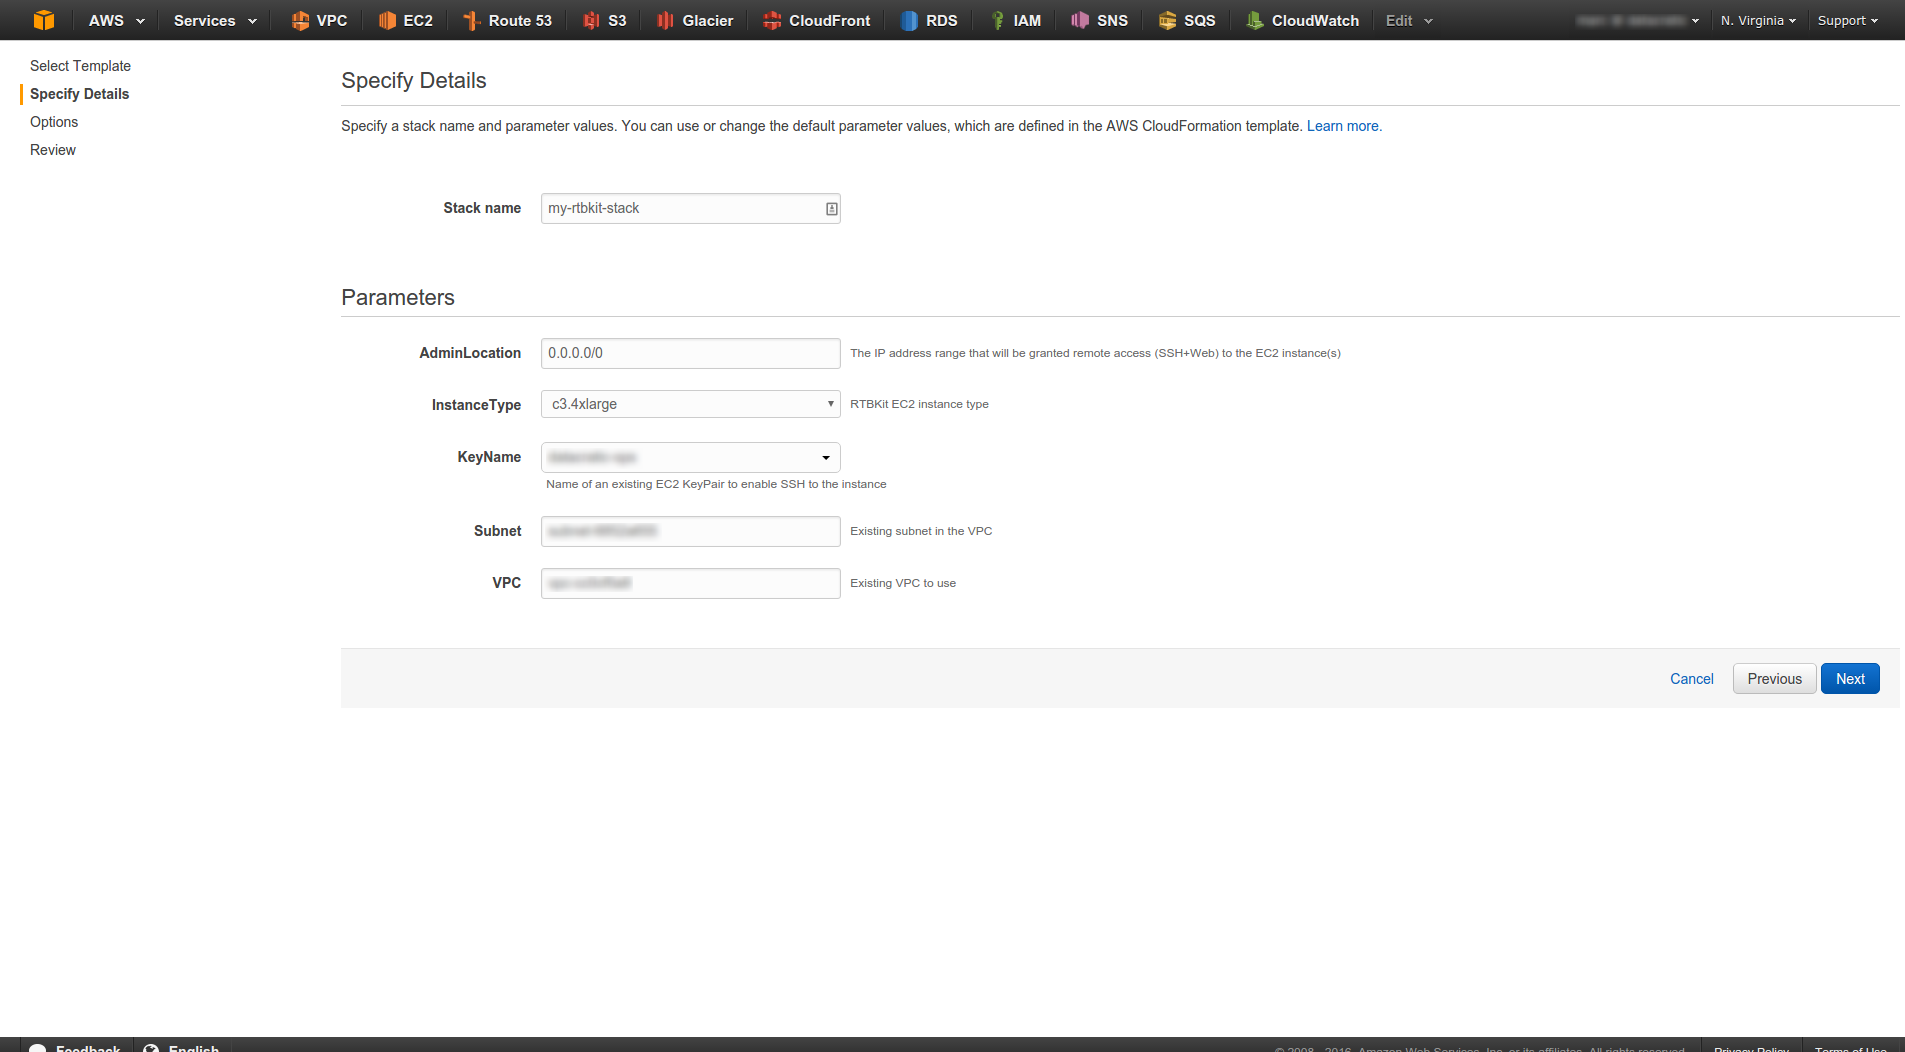 How to launch the demo stack with the AWS CloudFormation Template